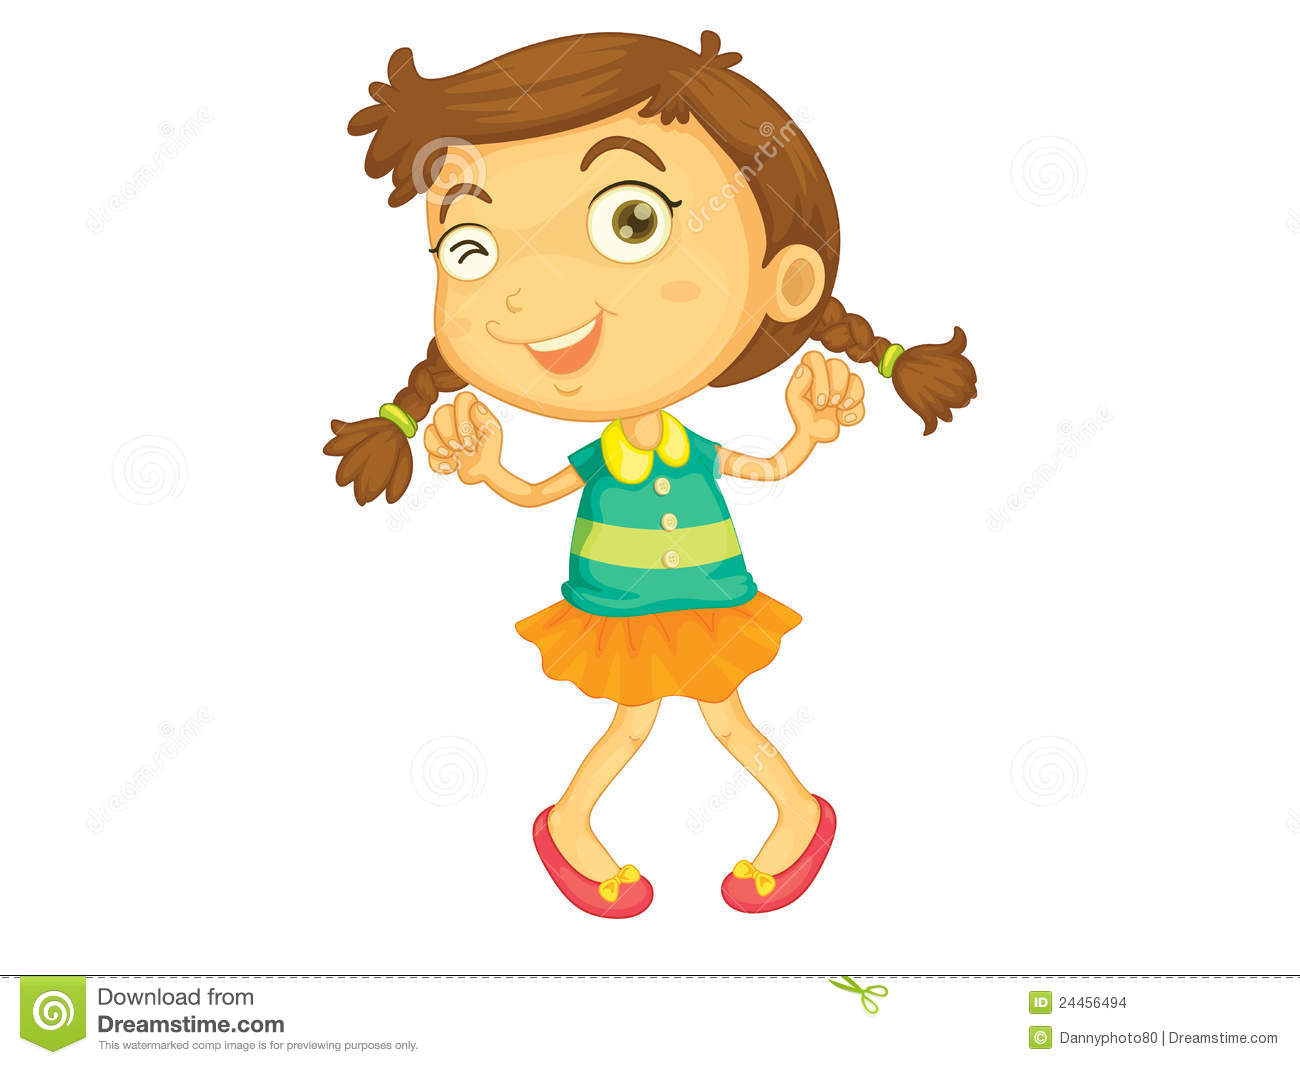 Dancing girl stock vector. Illustration of clipart, young.